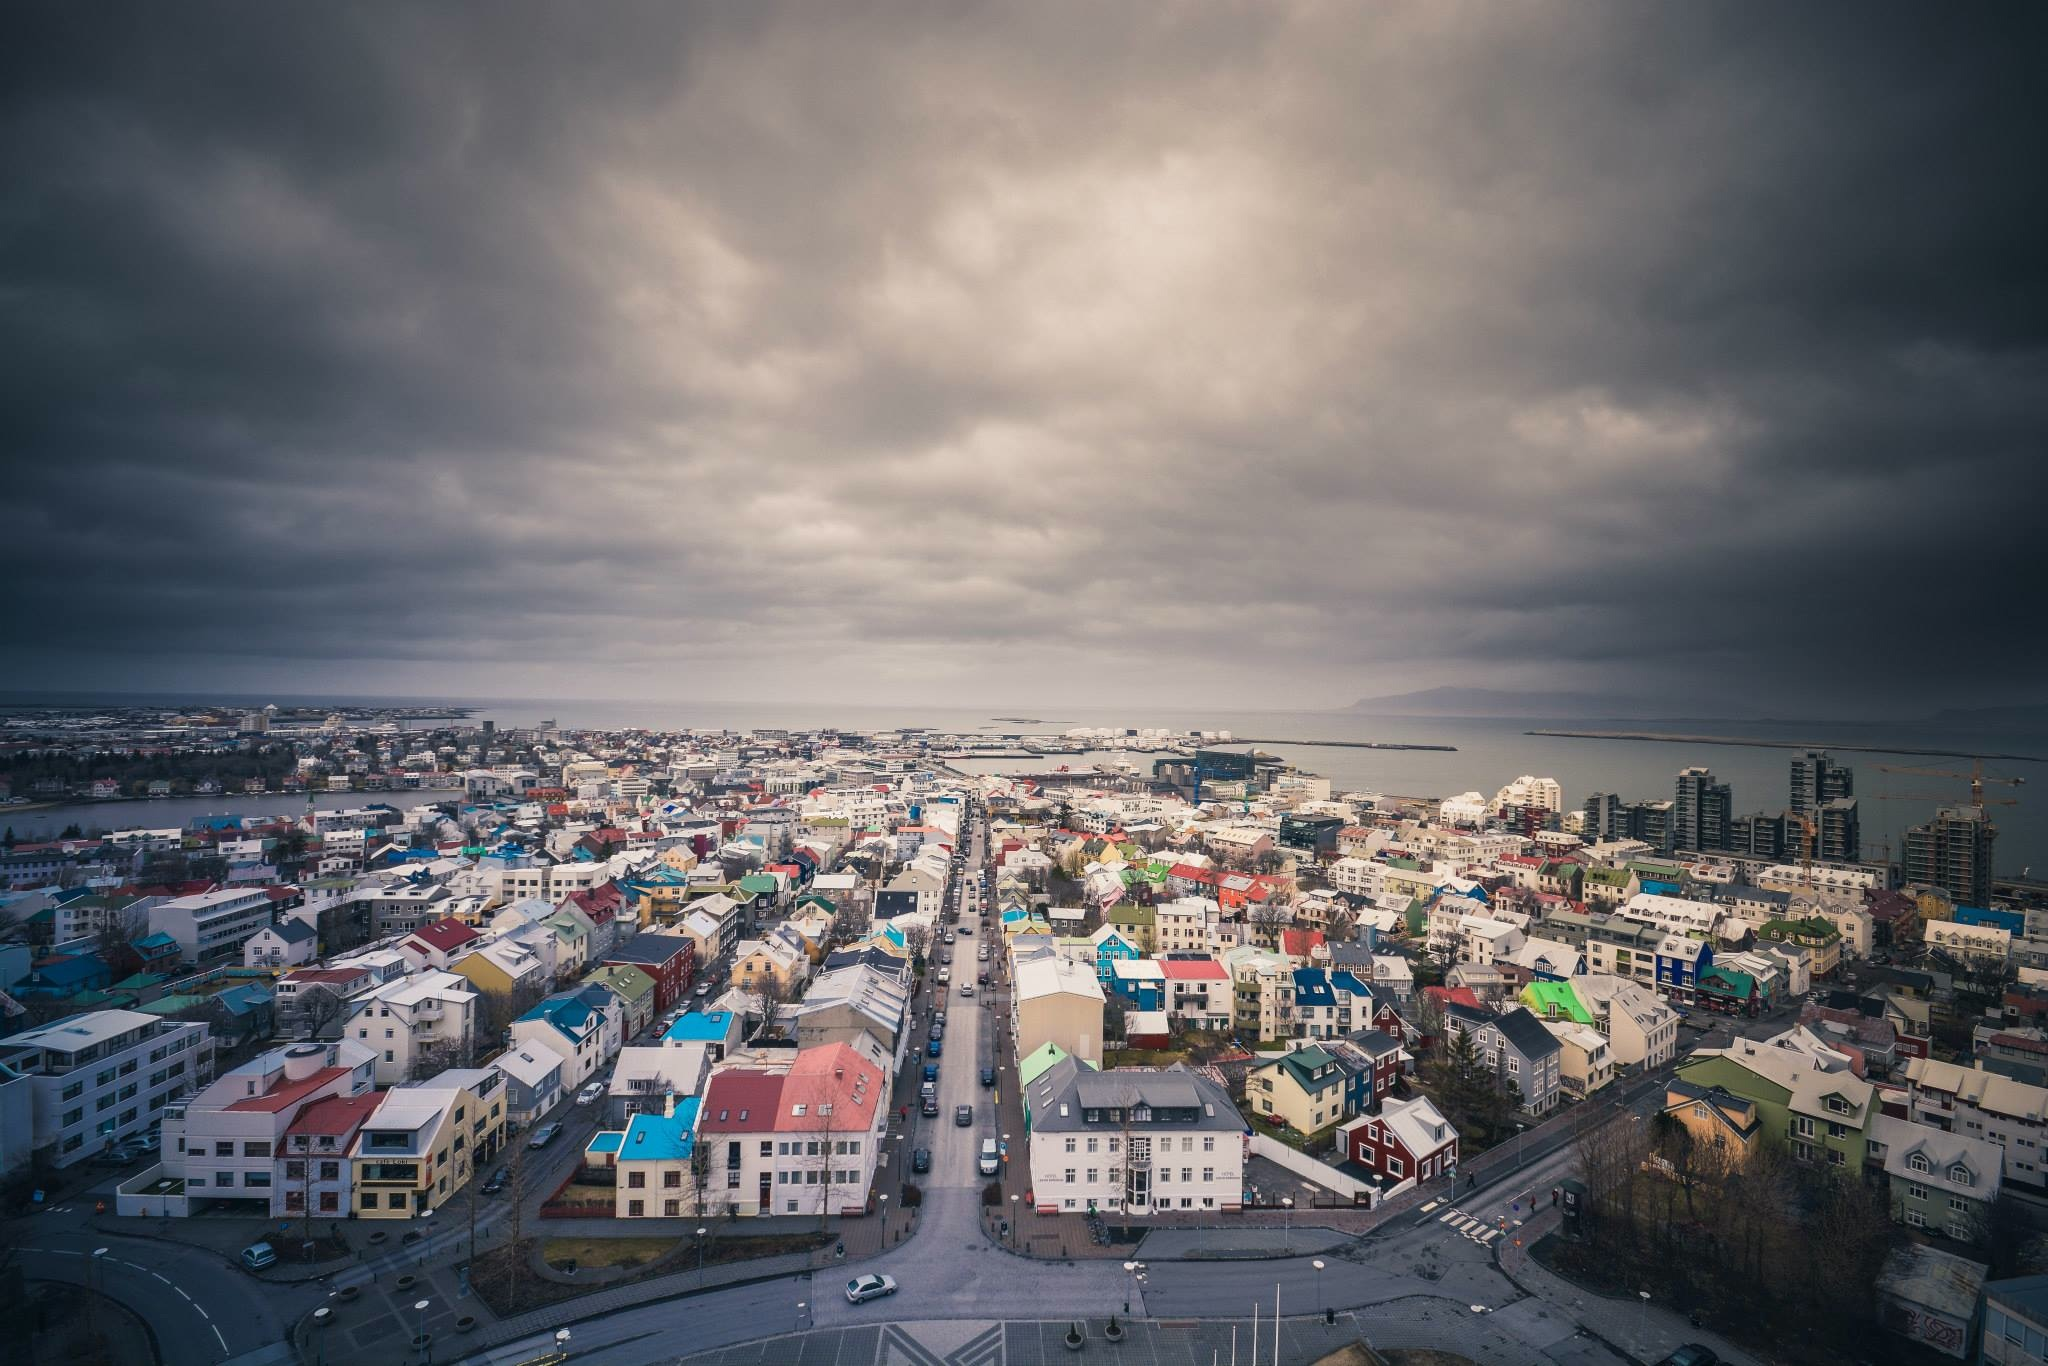 The capital city of Iceland, Reykjavik, as seen during a rainy day.